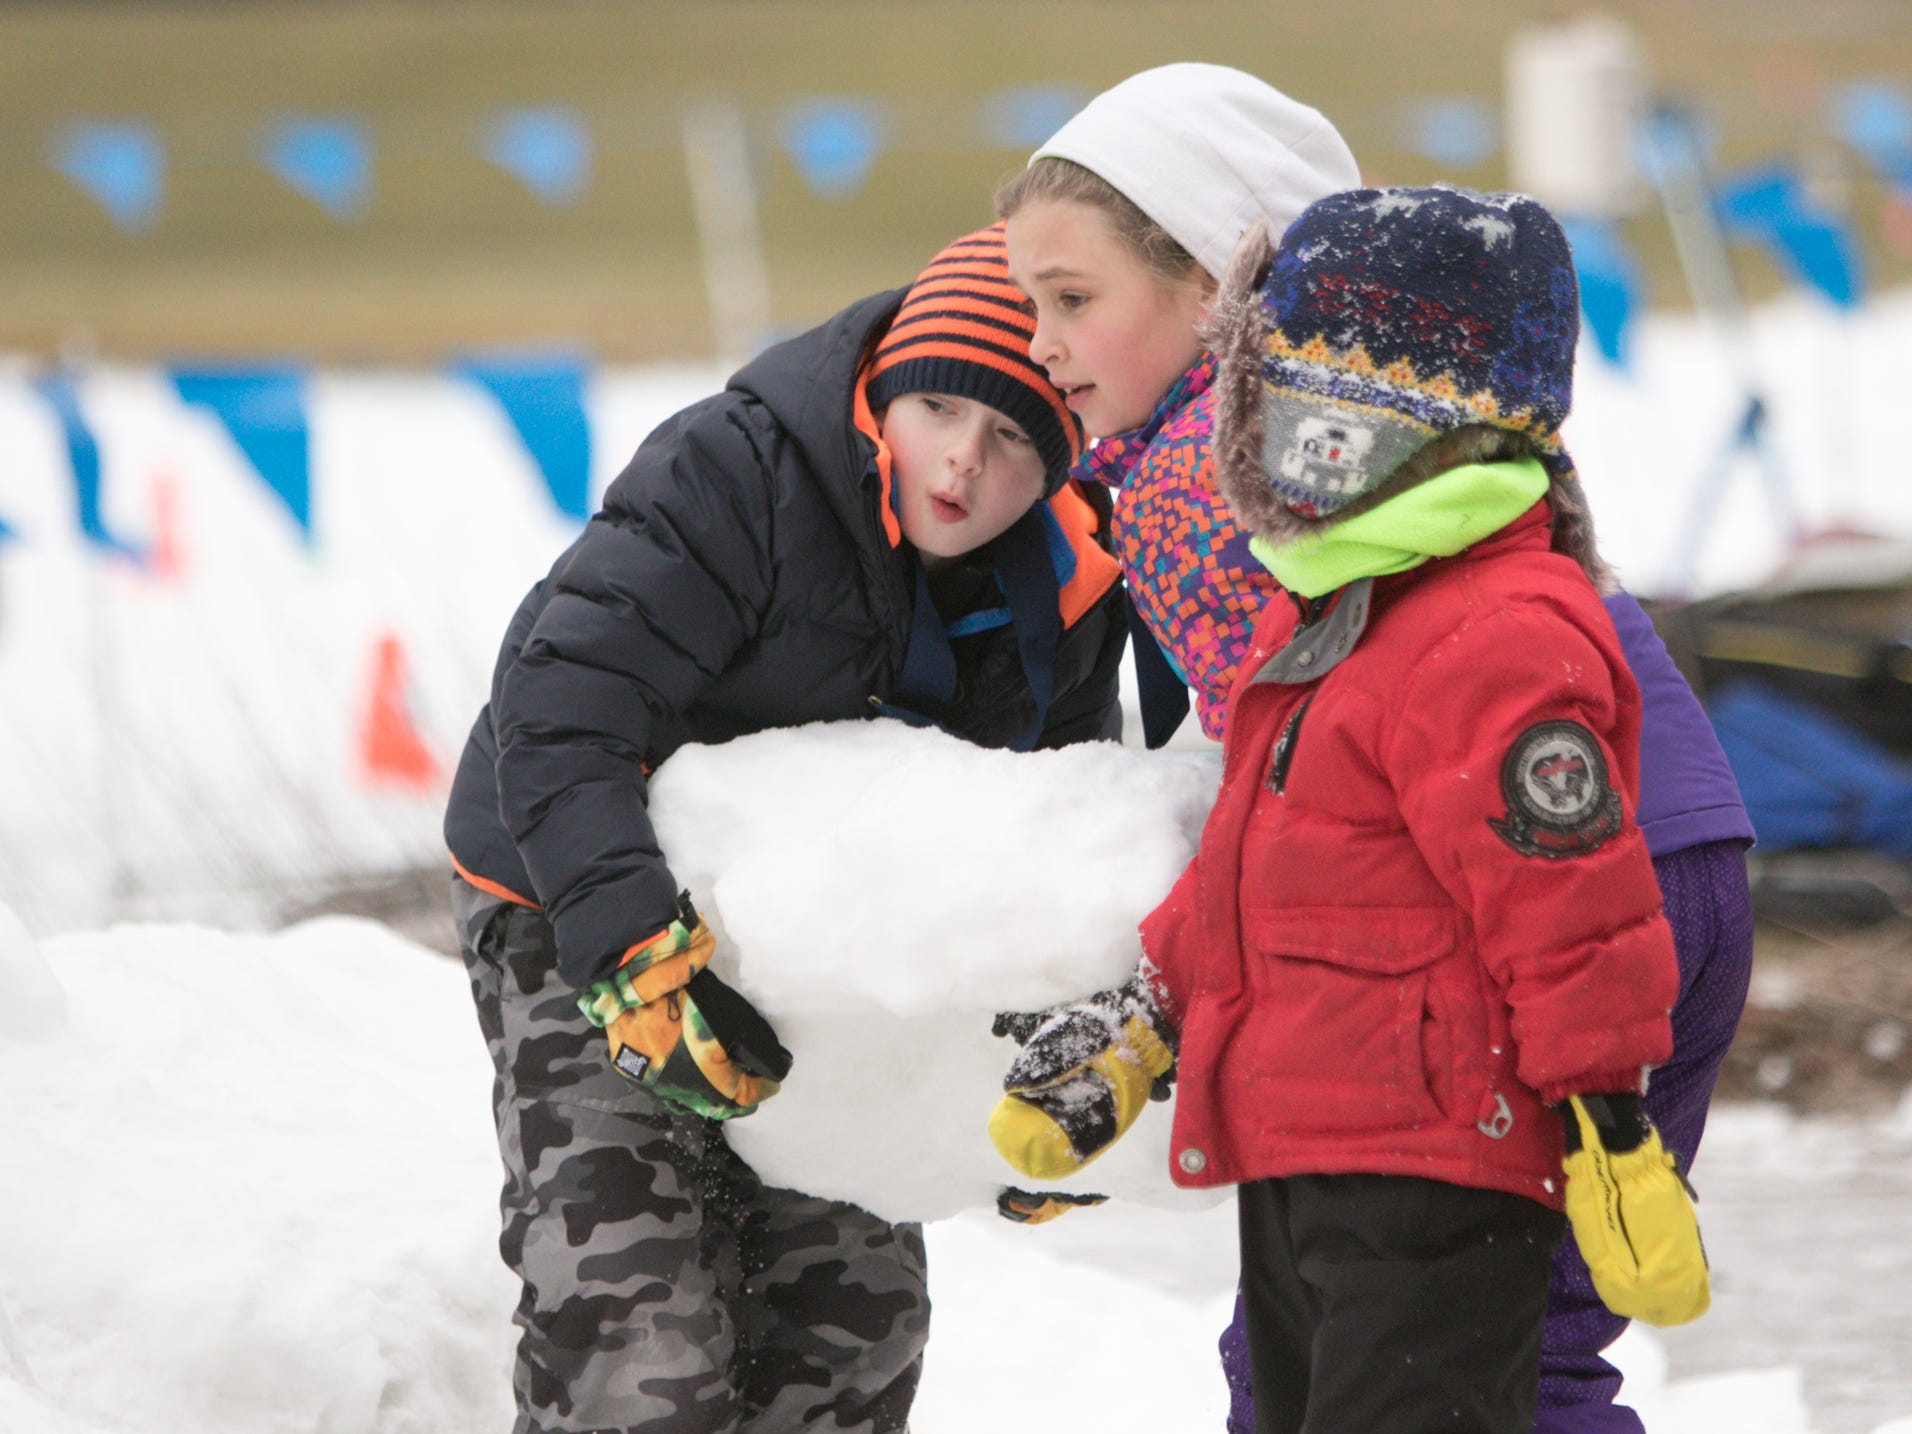 After the Frosty Ski Fest kids' race Saturday, Jan. 12, 2019, from left, Alex Ries, nine years old, Logan Anderson, eight, and 5-year-old brother Graeme Anderson play with some of the man-made snow provided for the ski events at Huron Meadows.